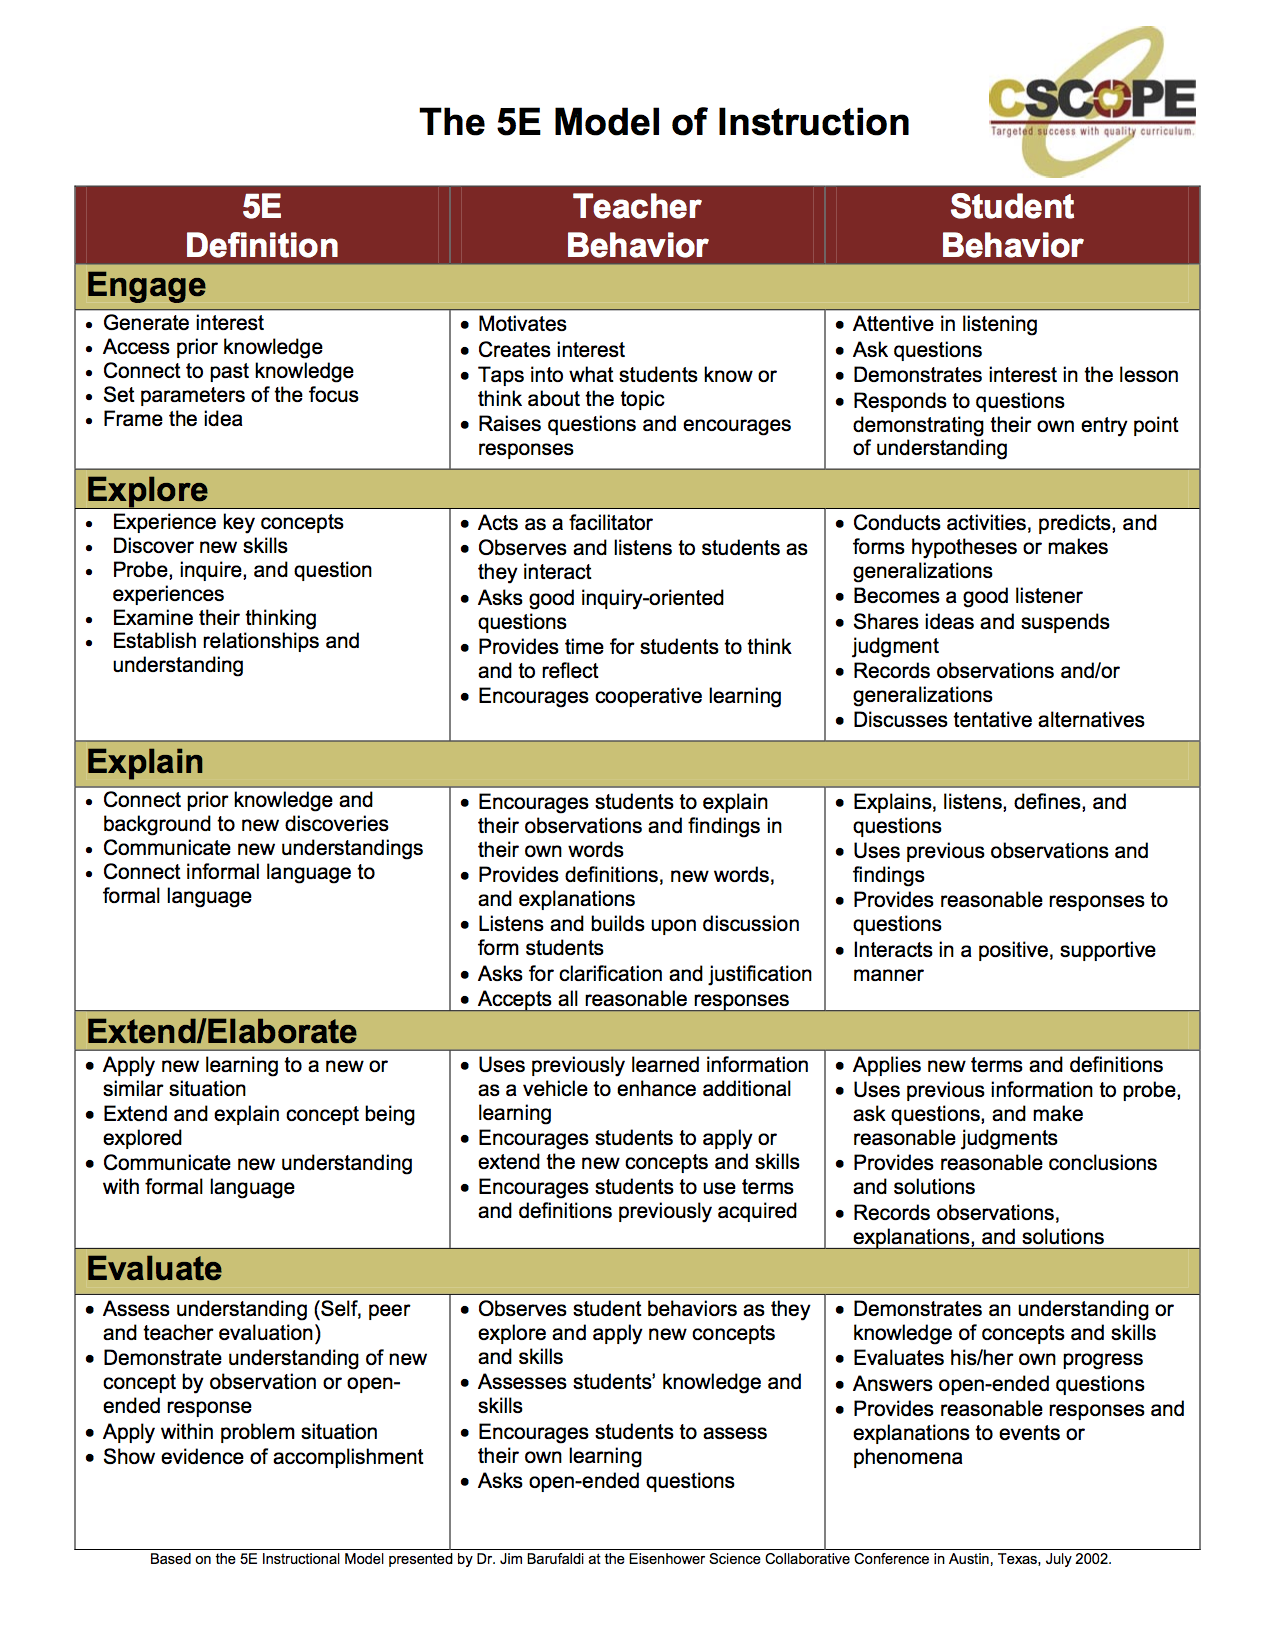 5e Model Different Roles For The Teacher And Student